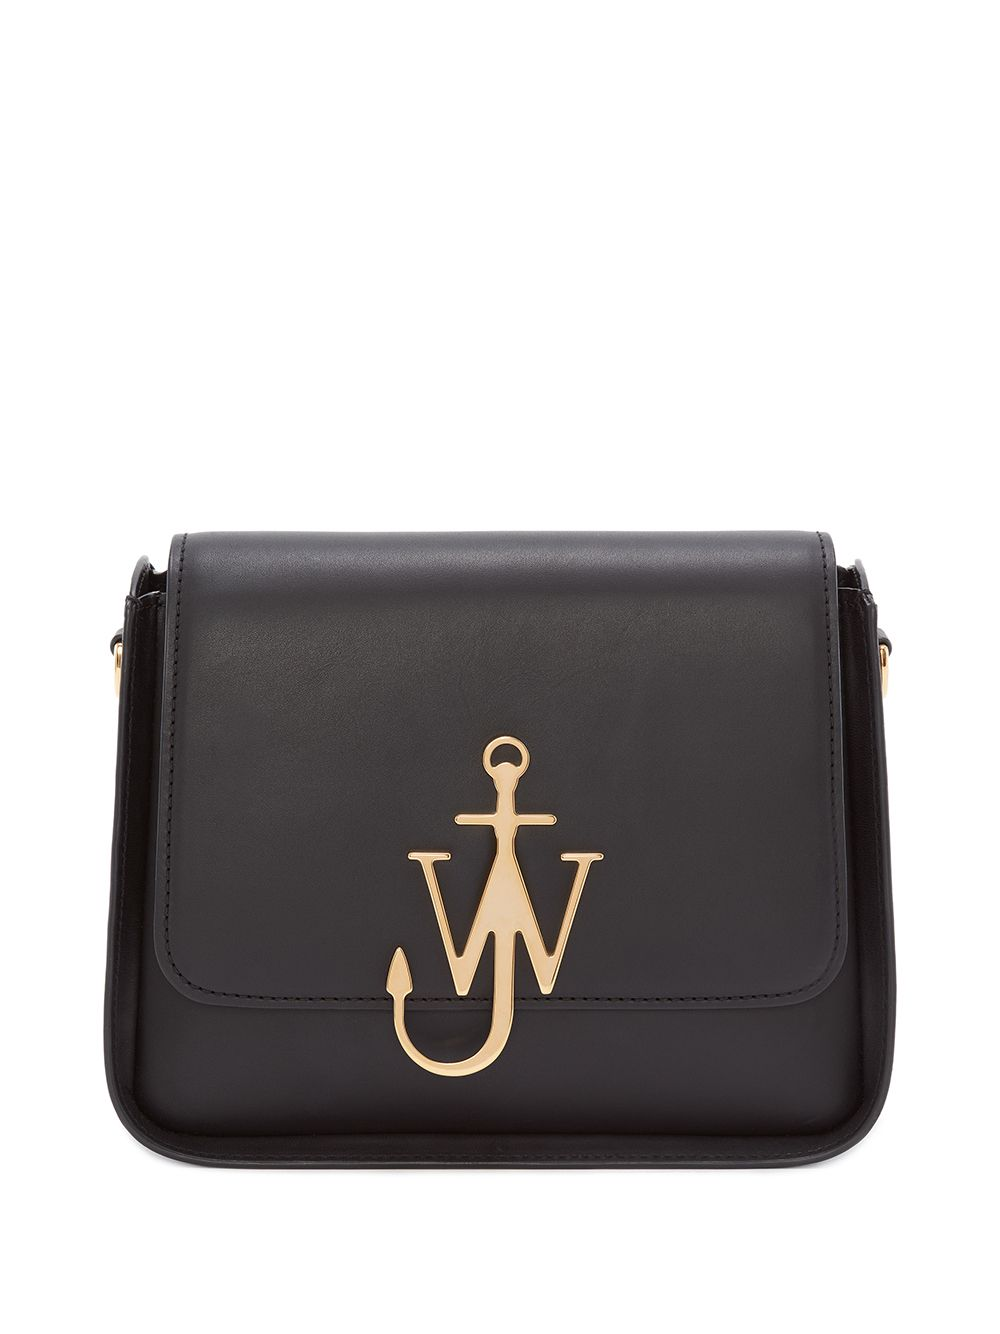 JW ANDERSON WOMEN ANCHOR BOX BAG